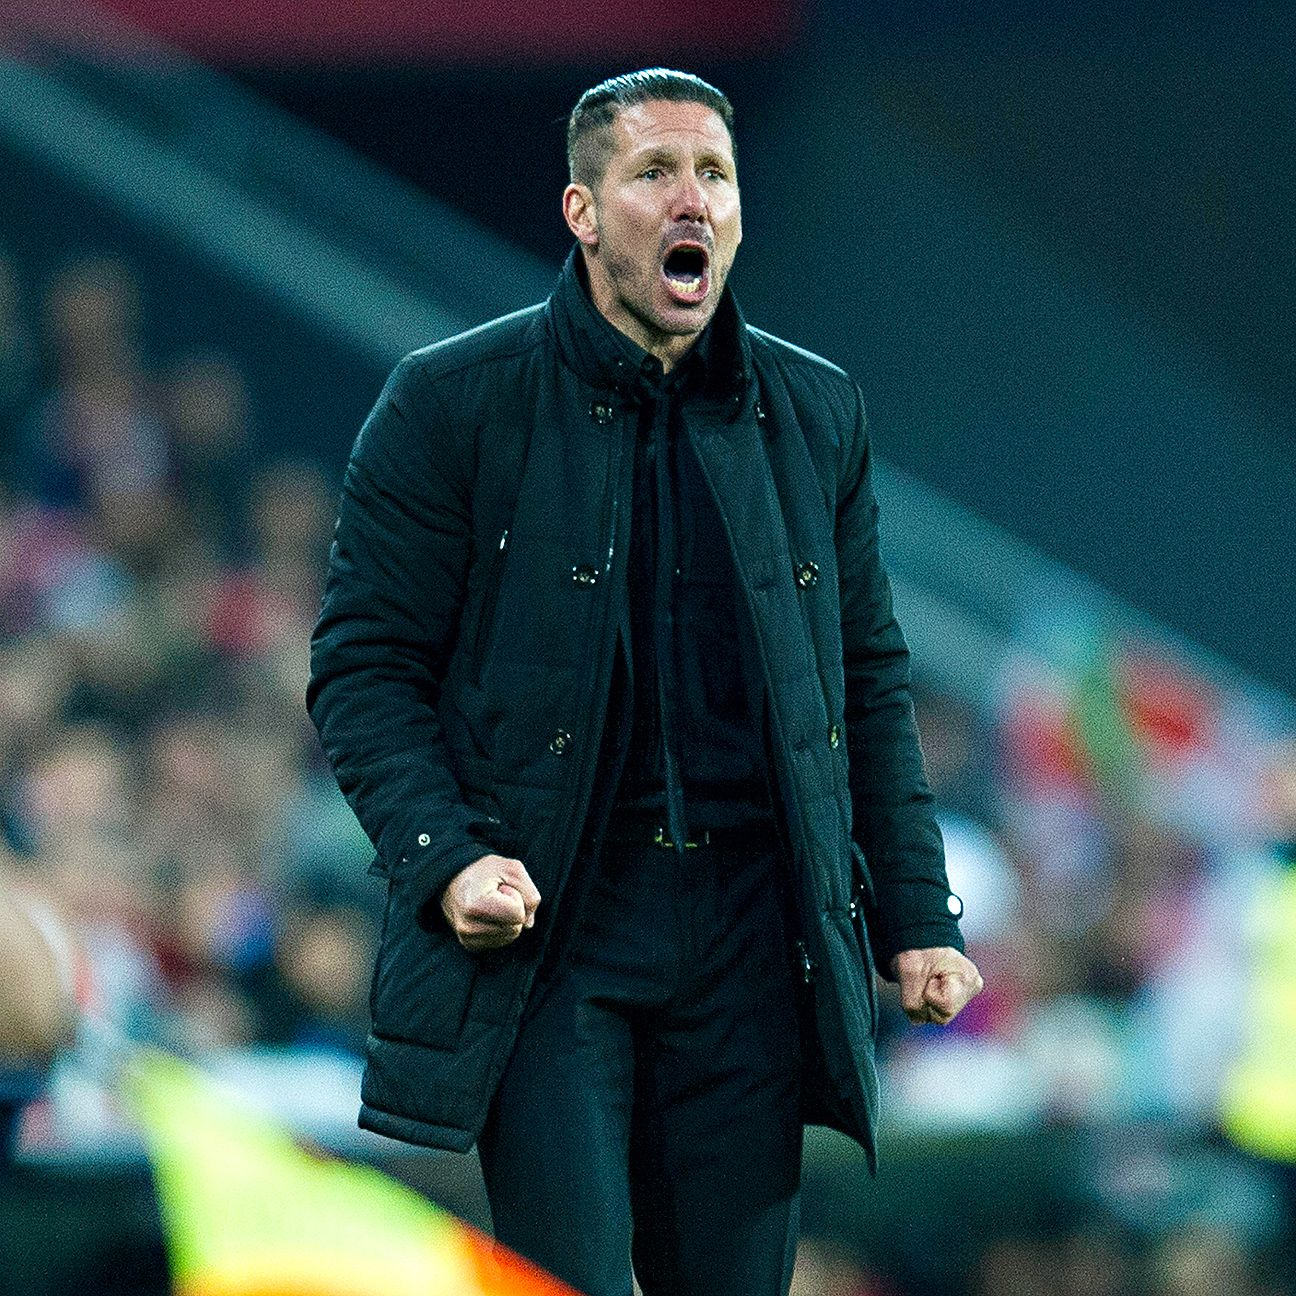 Whatever Atletico Madrid manager Diego Simeone told his team at halftime worked to a tee, as the reigning La Liga champions came from behind to down Athletic Bilbao.